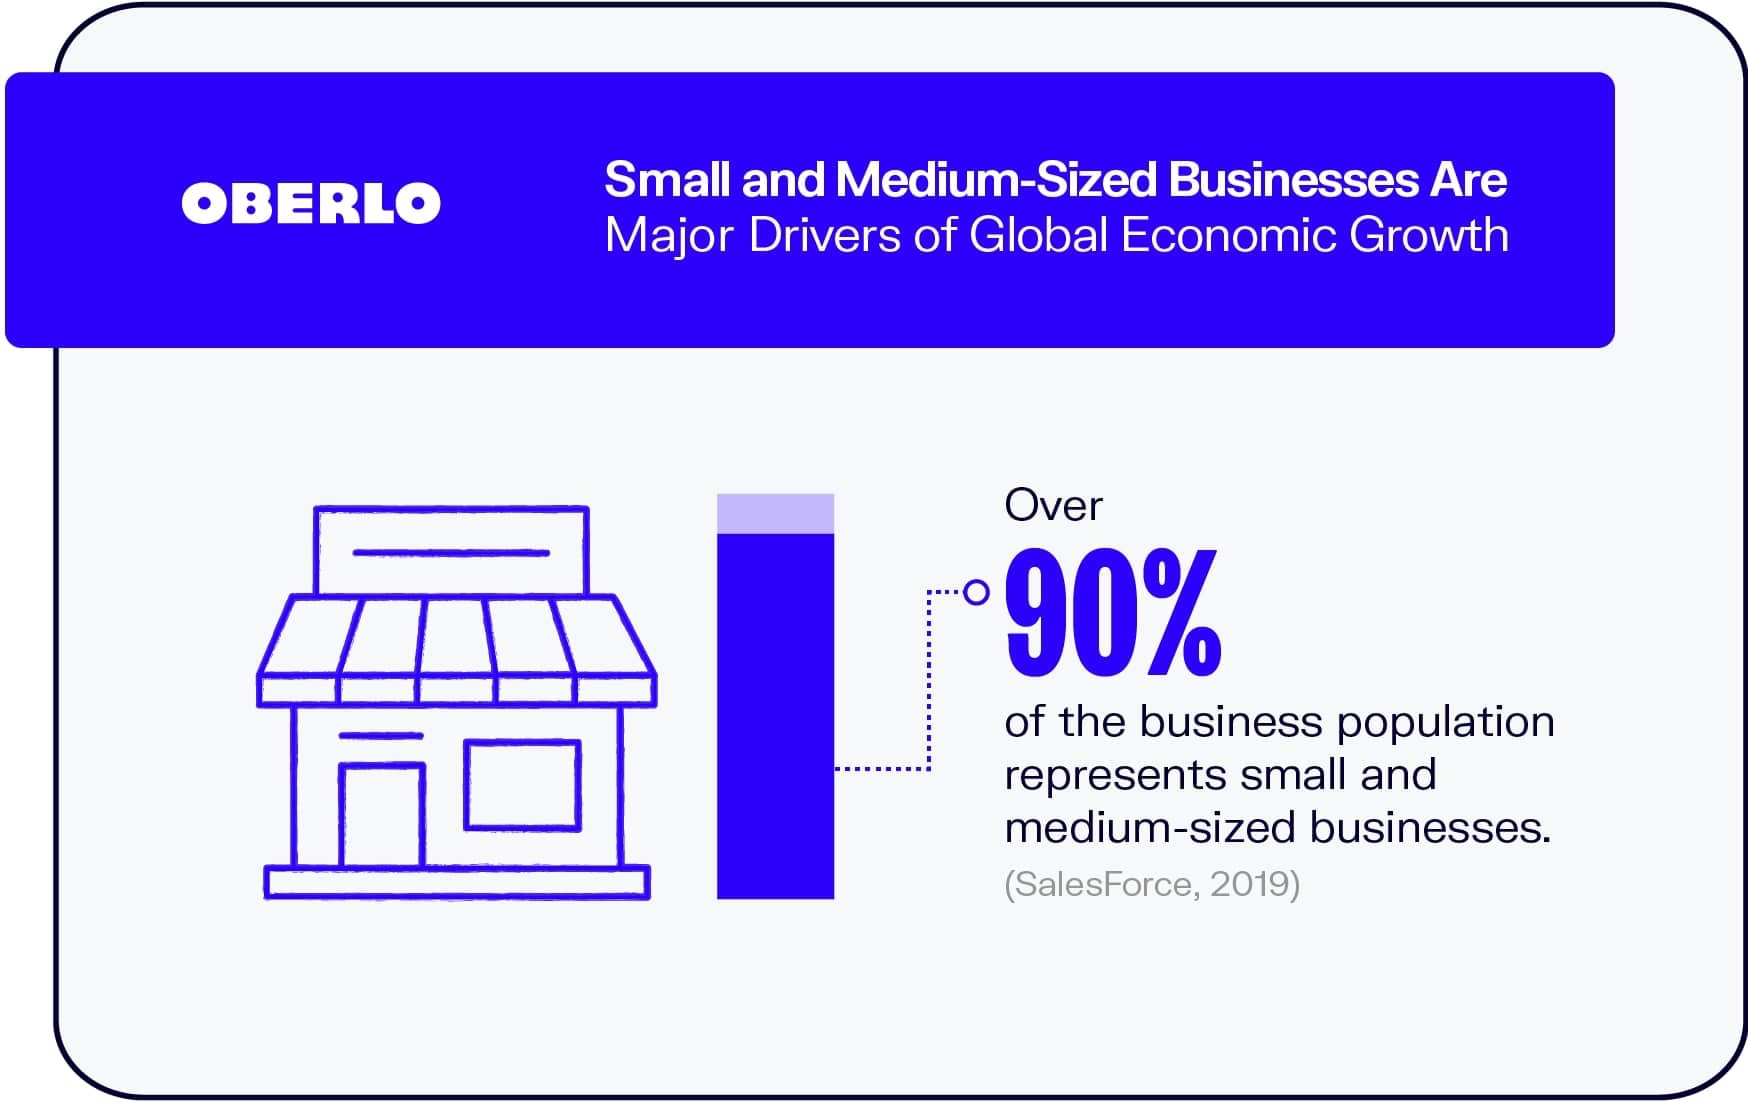 Small and Medium-Sized Businesses Are Major Drivers of Global Economic Growth